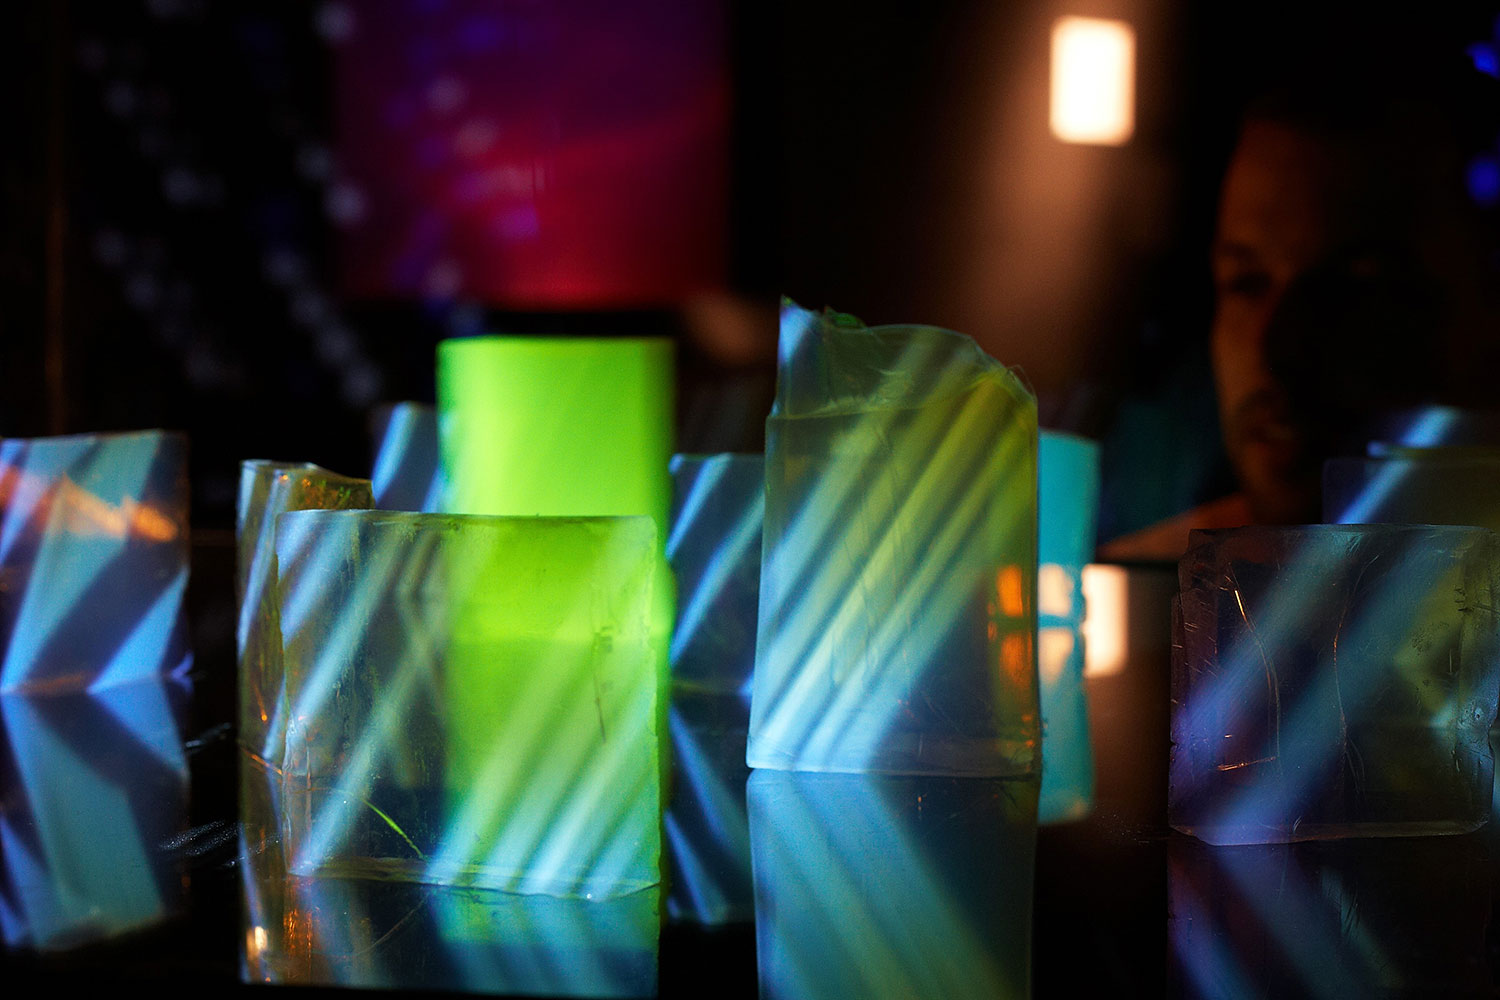 Aerogel Sculptures    Projections on 99.8% air    more